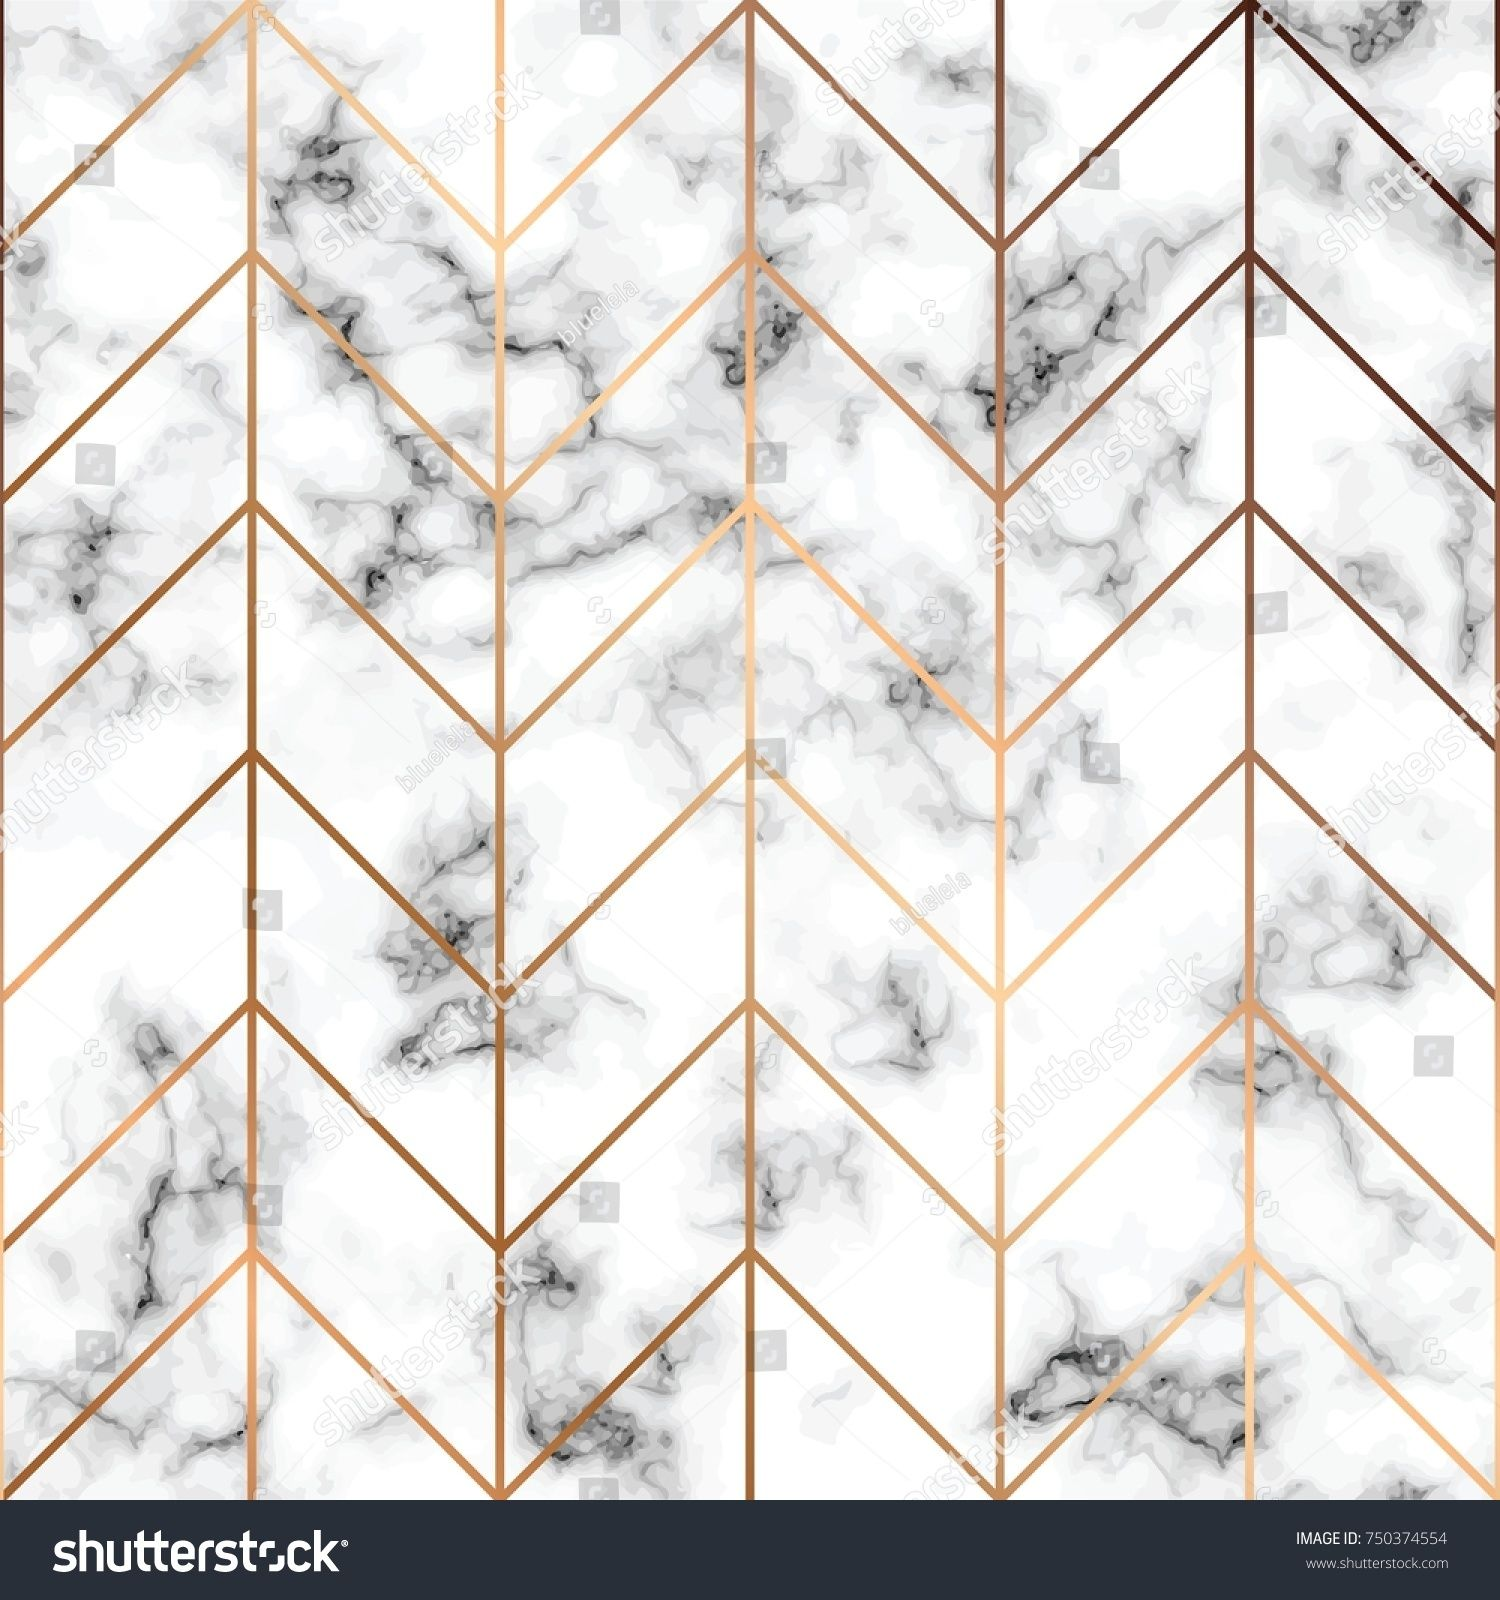 Vector Marble Texture Seamless Pattern Design With Golden Geometric Lines Black And White Marblin Marble Texture Seamless Marble Print Pattern Marble Texture